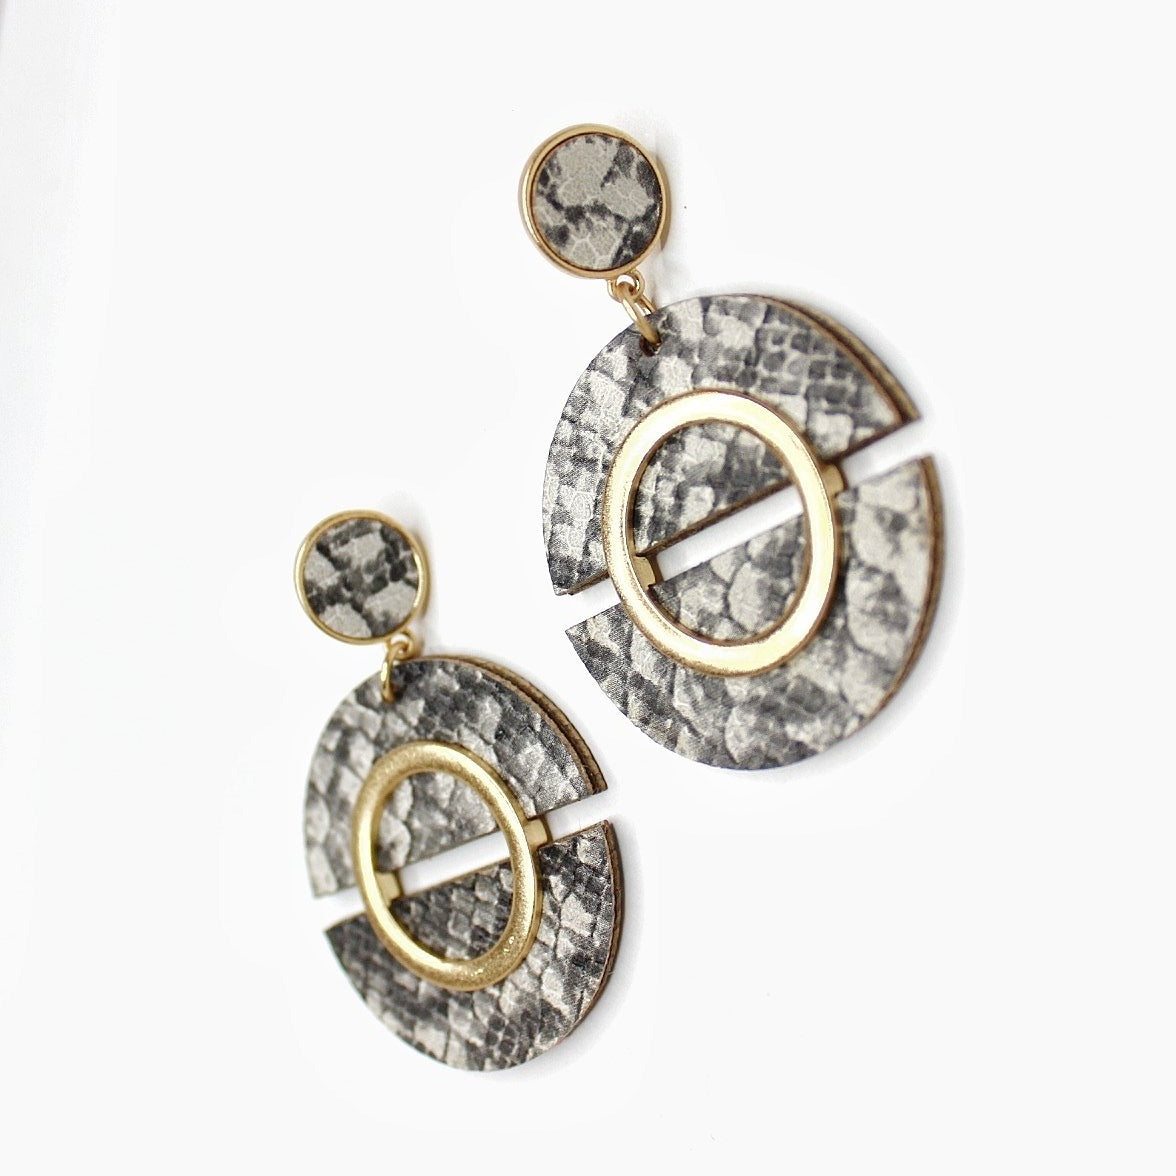 Buy beautiful Grey Snakeskin Earrings - AWKN Jewelry's